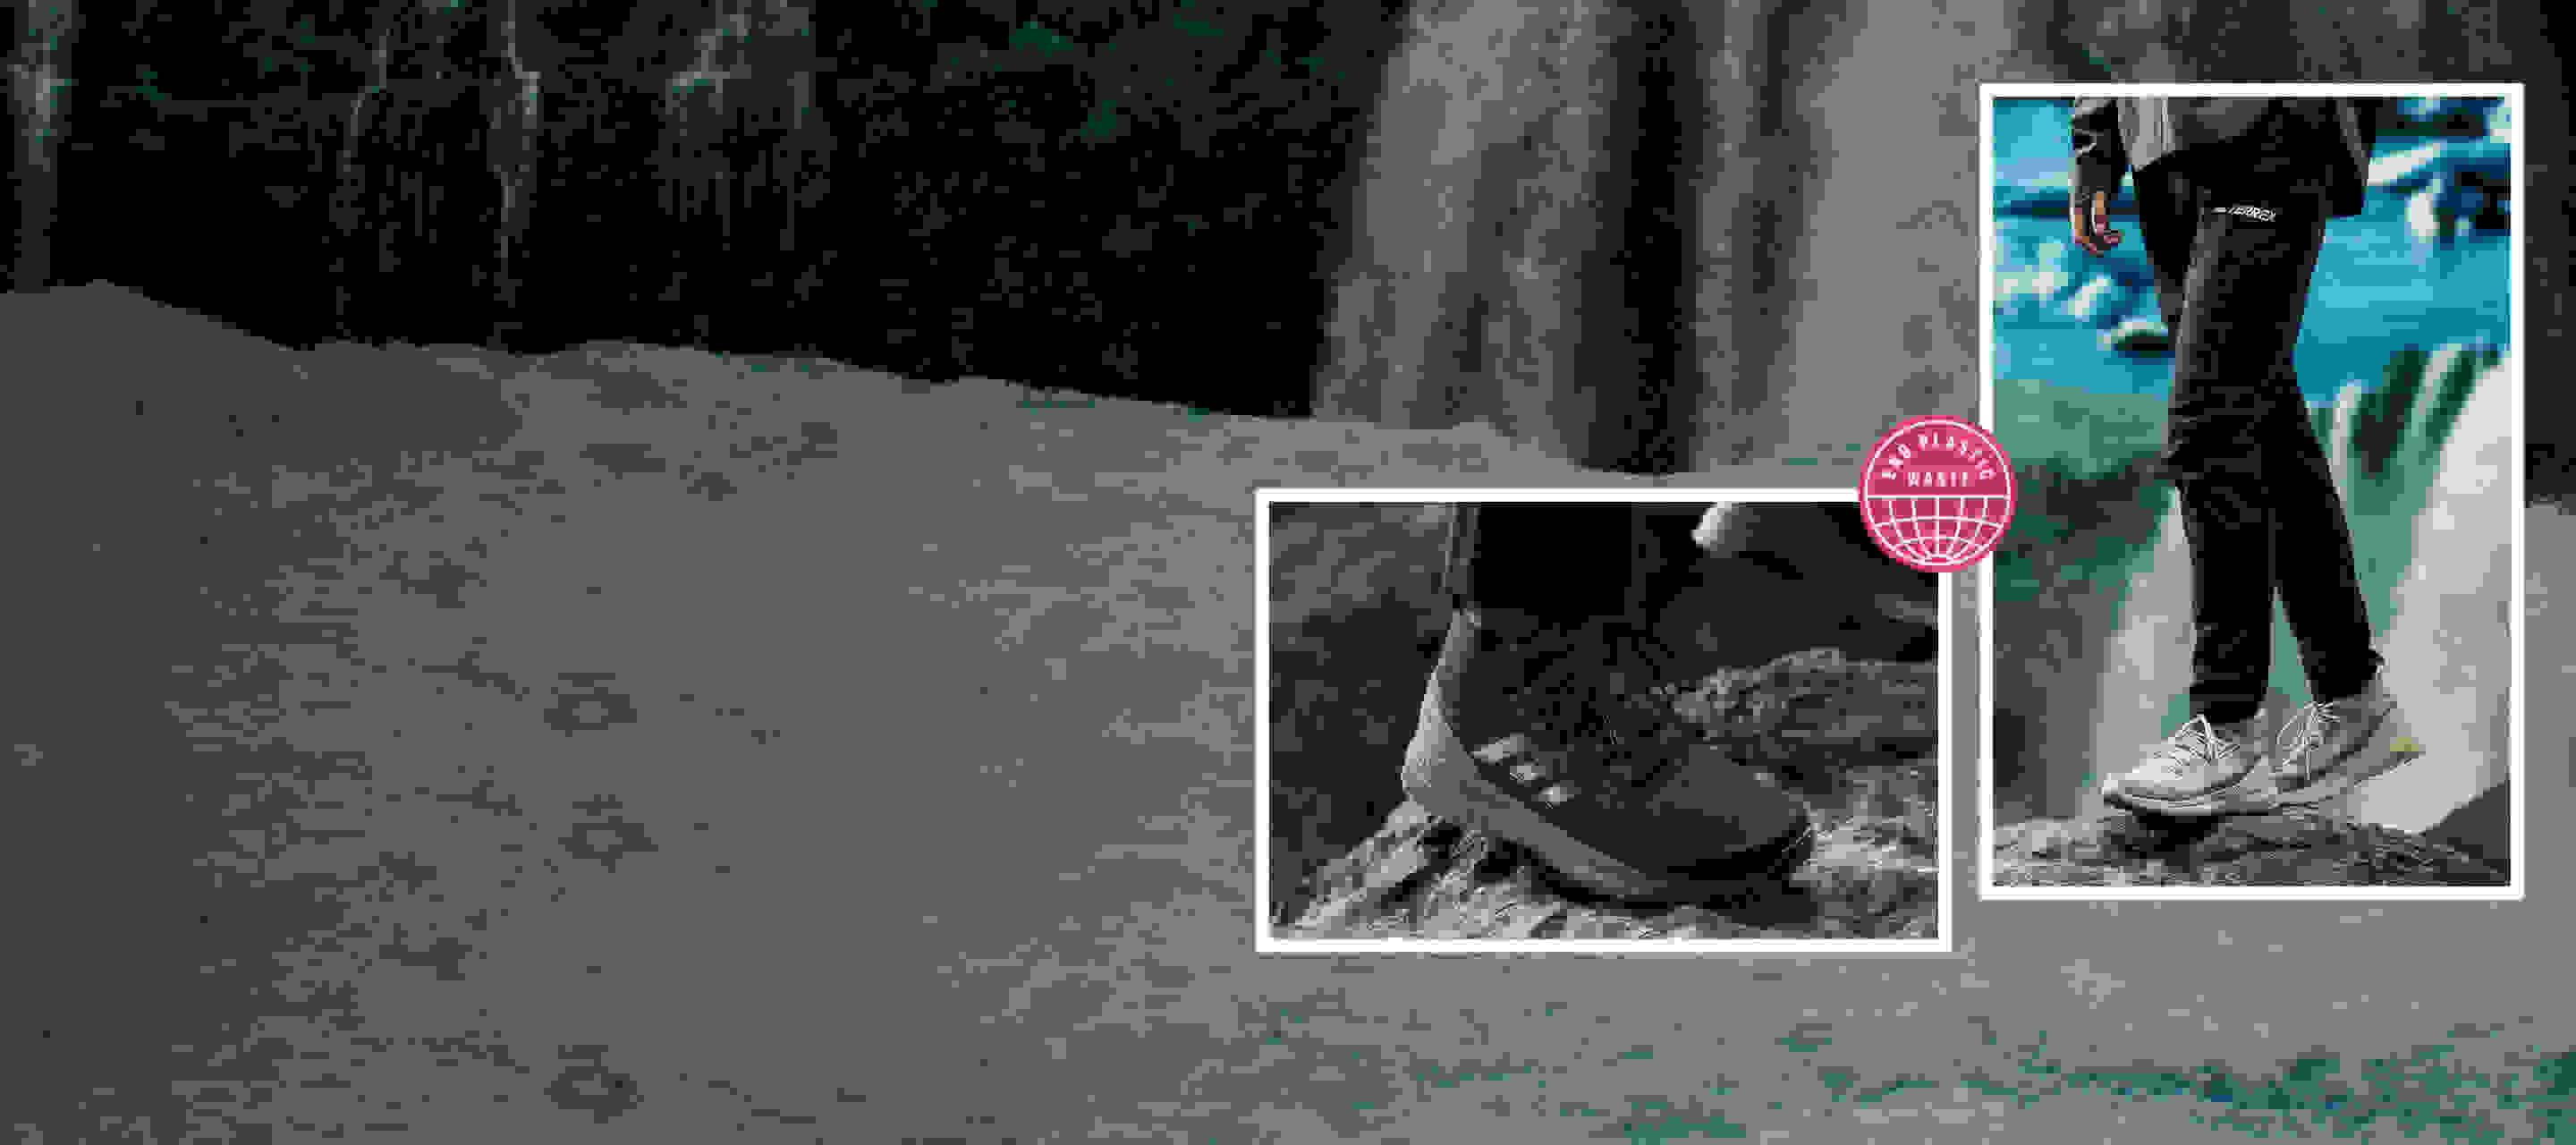 Background image of a waterfall, in the foreground 2 models wearing adidas x Parley apparel